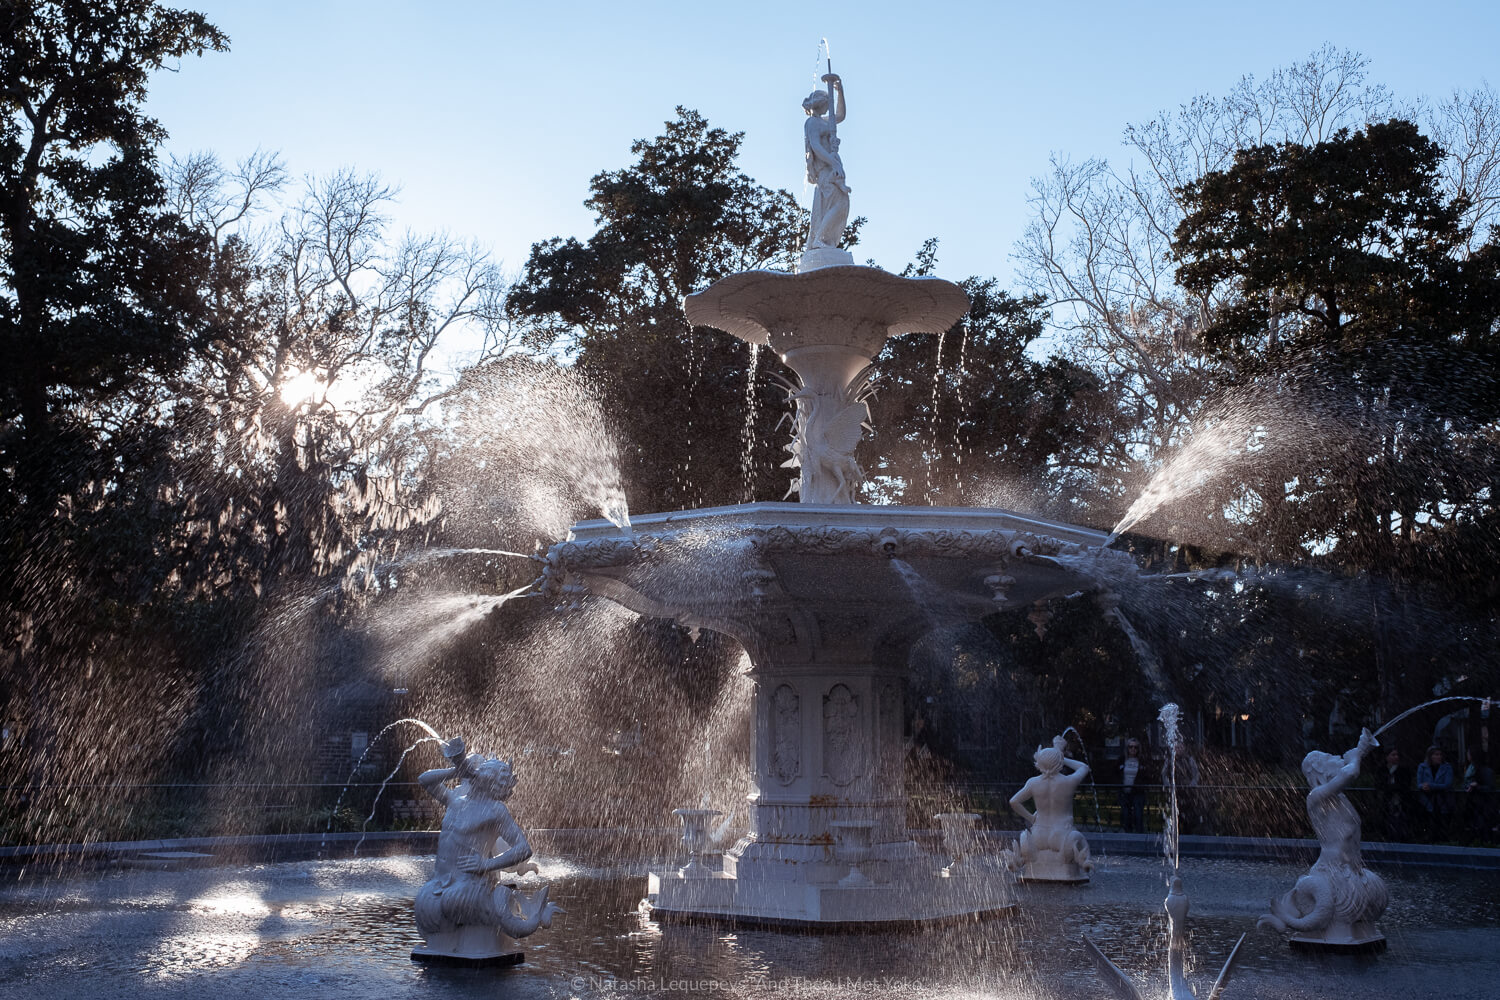 """Fountain in Forsyth Park. Travel photography and guide by © Natasha Lequepeys for """"And Then I Met Yoko"""". #savannah #usa #travelguide #travelblog"""